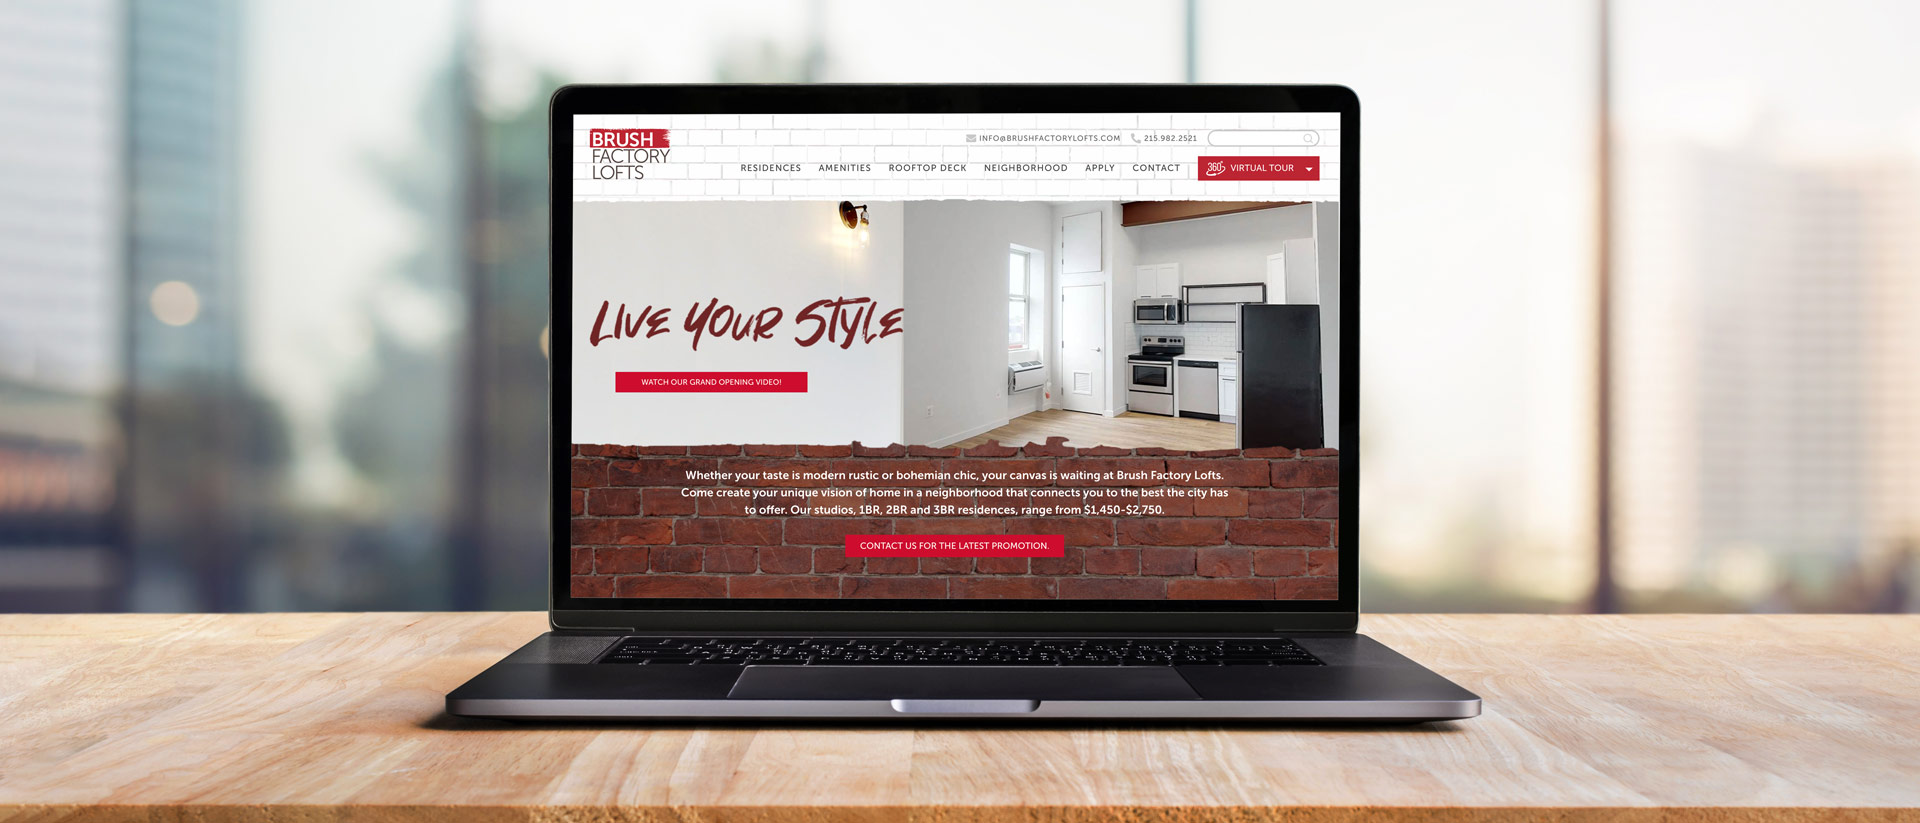 Digital Design and Development for Modern real Estate Brush Factory Lofts in Philly